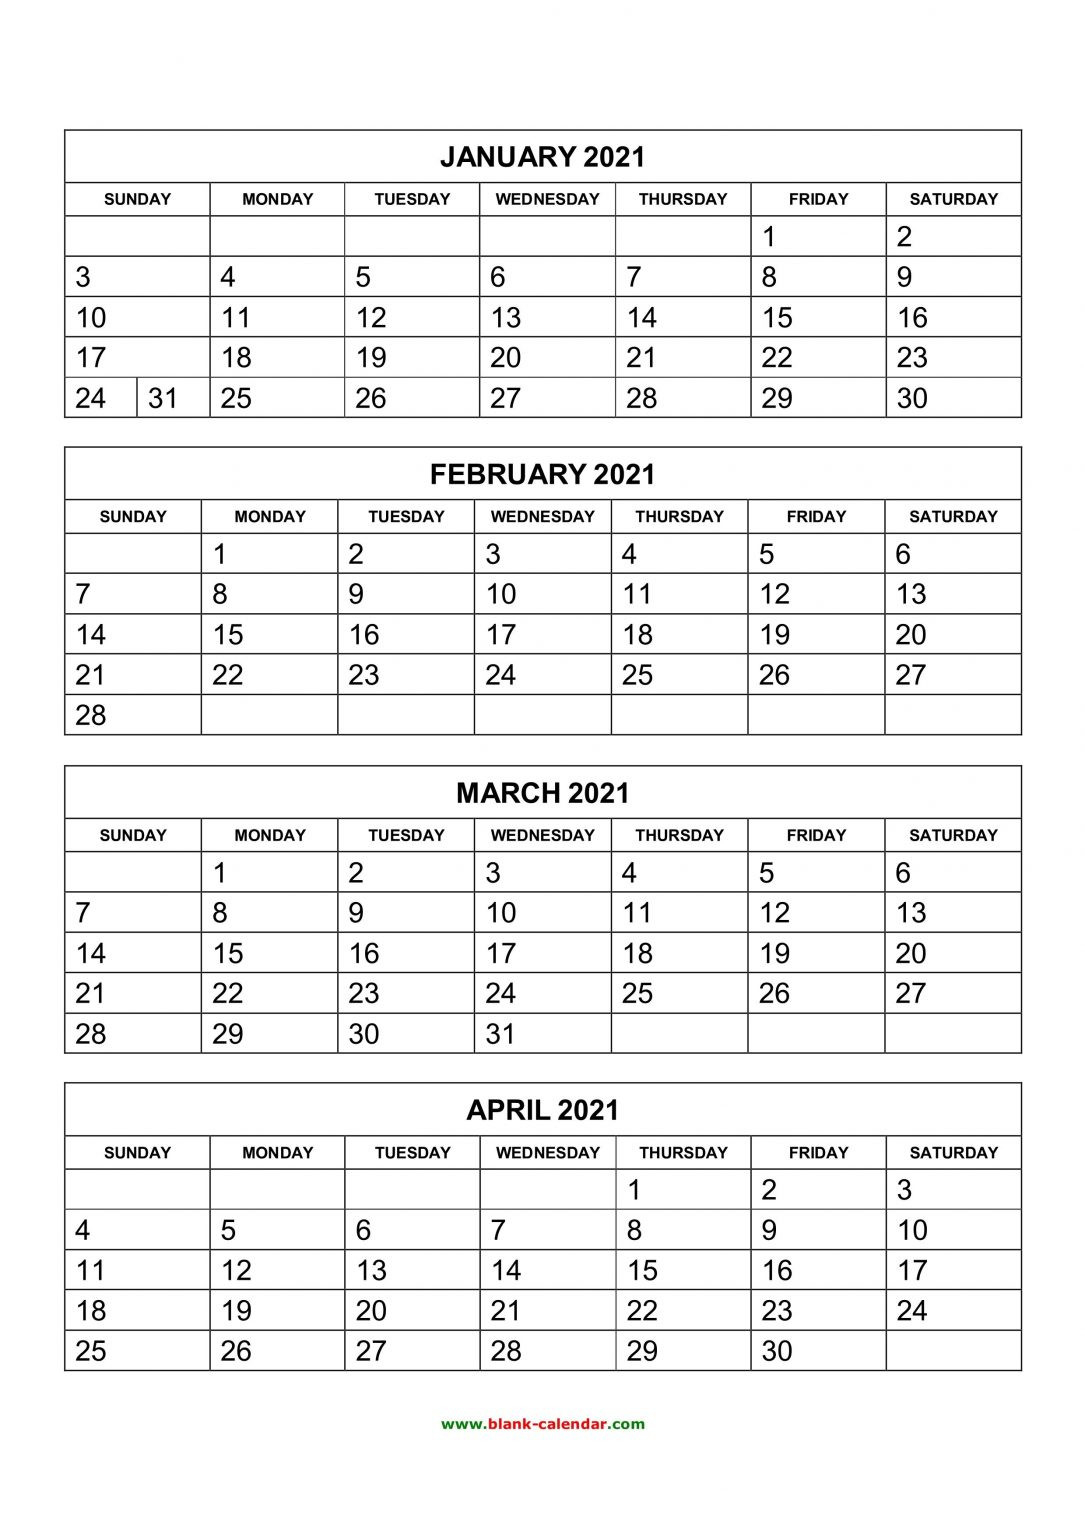 Free Calendar Fill In Online   Get Your Calendar Printable  When Would The Next Dpo Shot Be Due From 11/03/20